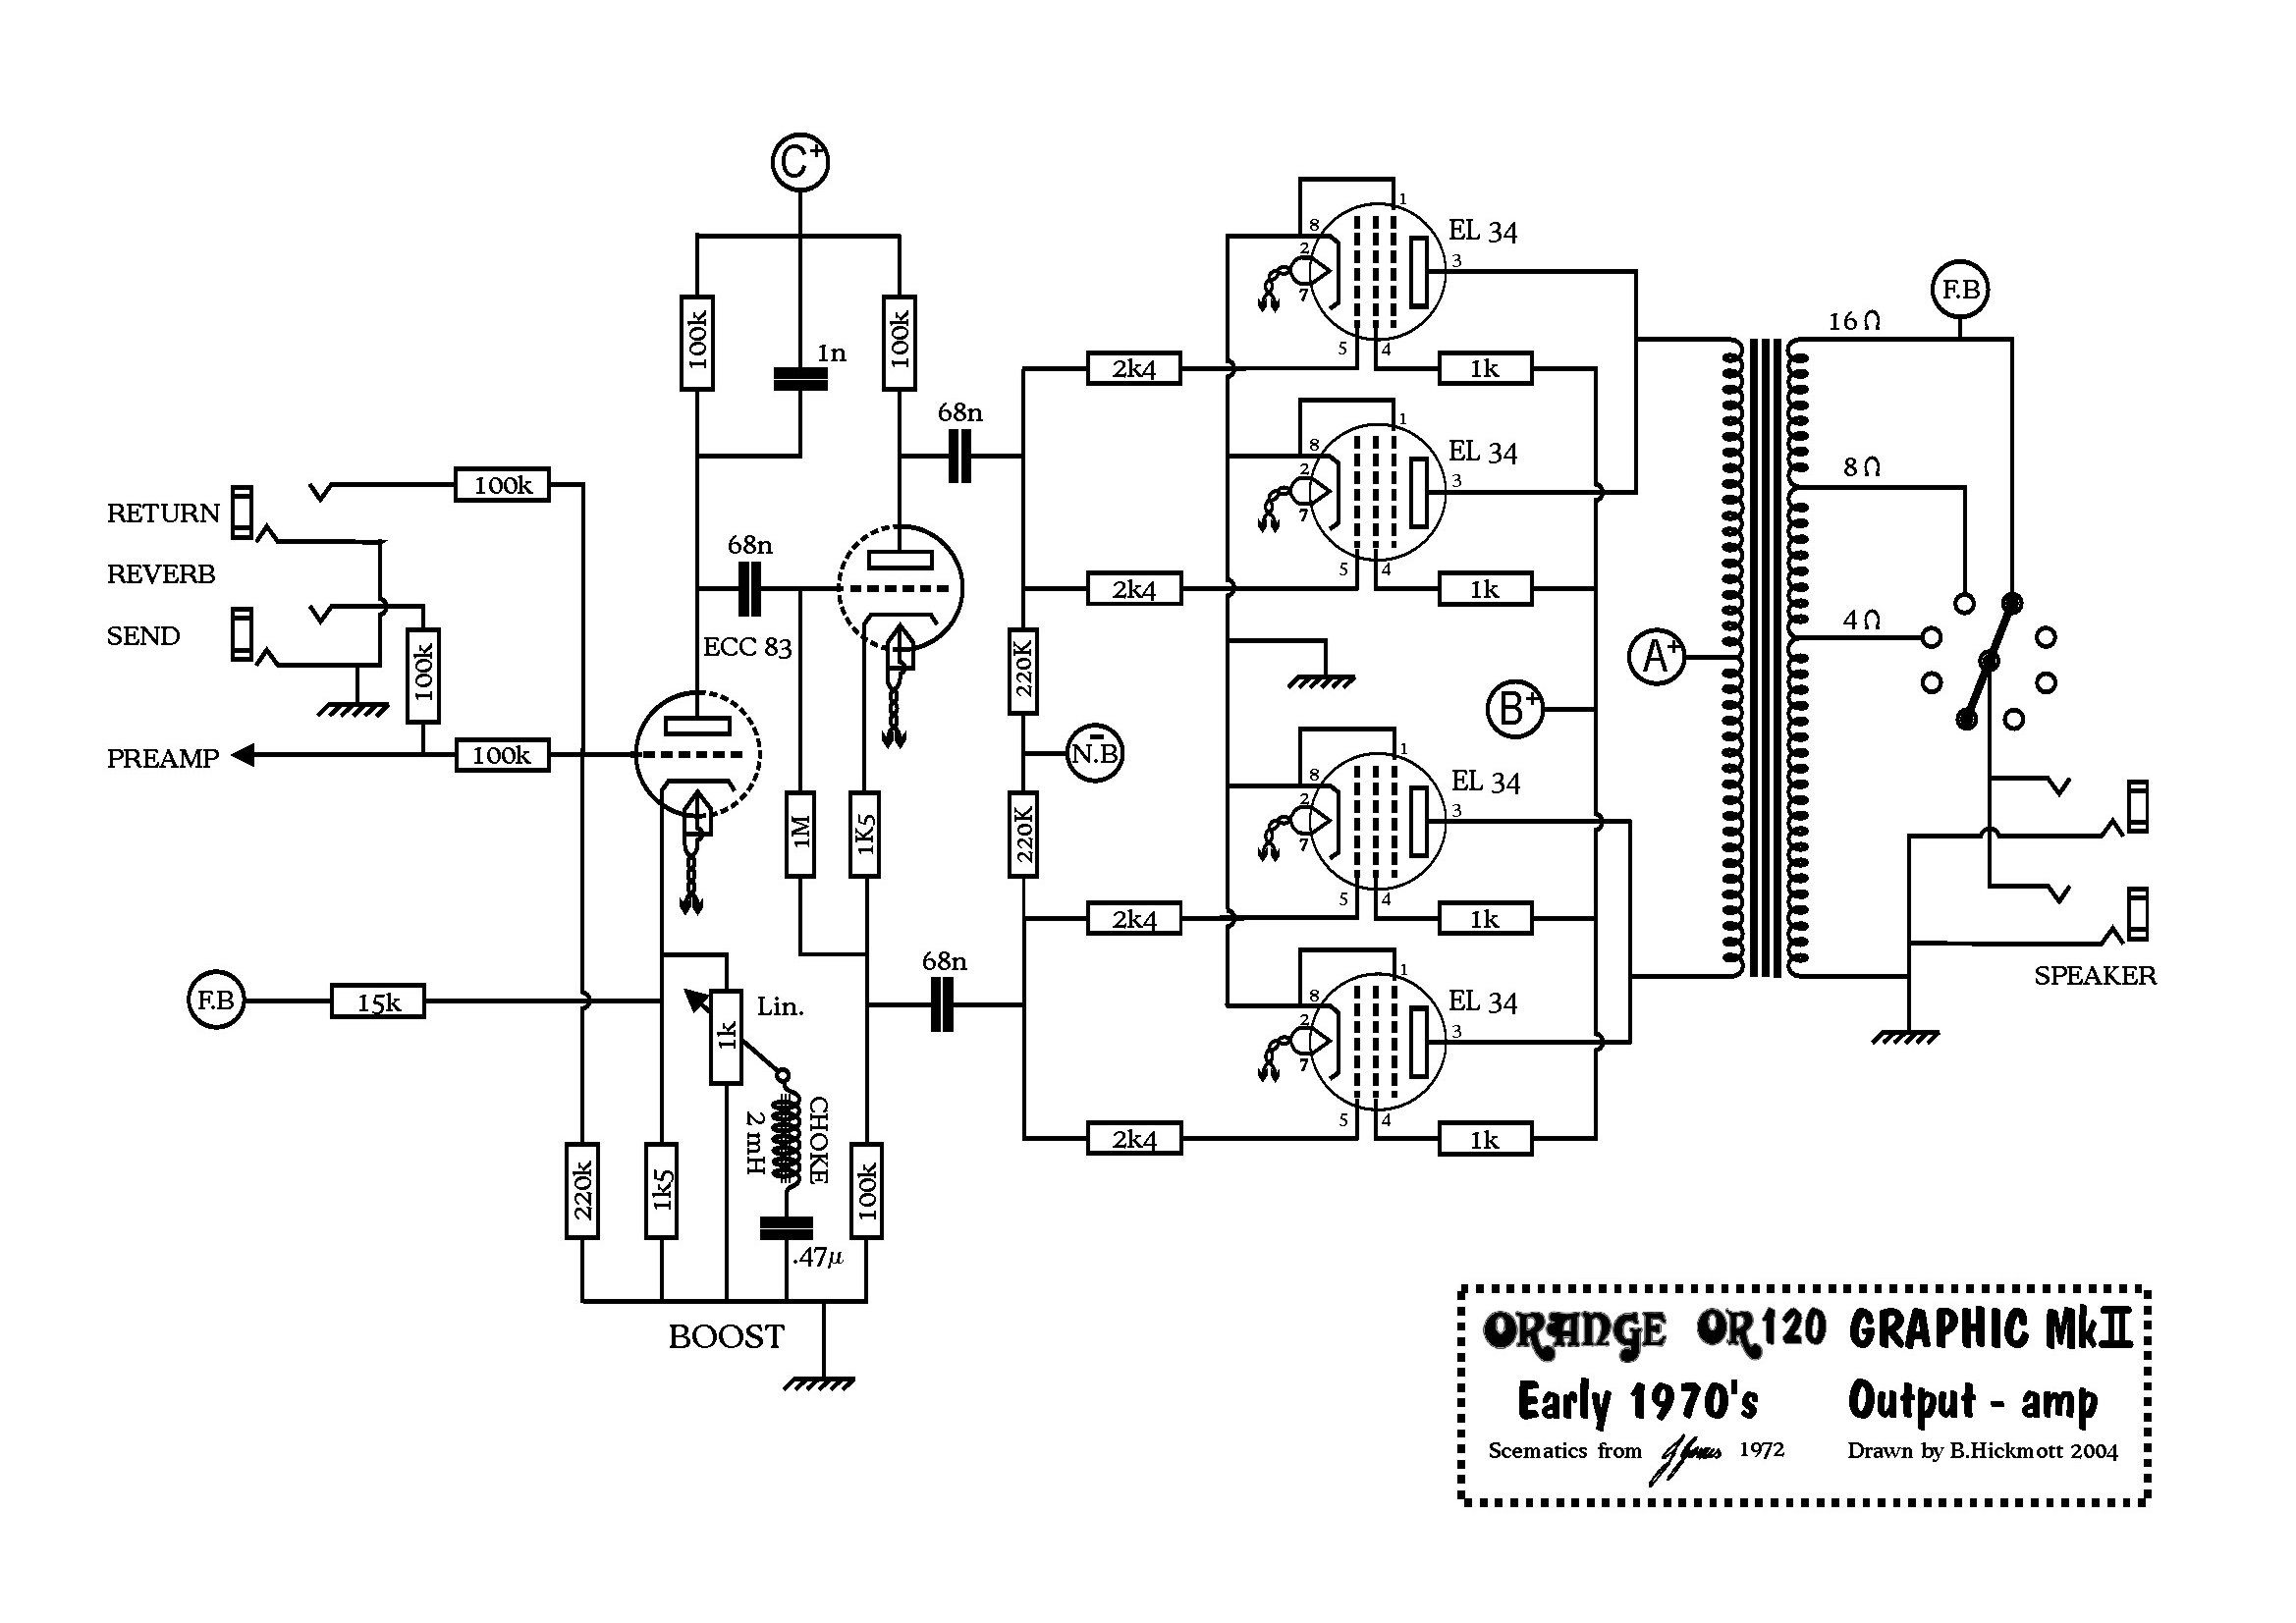 Orange mods on tube amp schematics